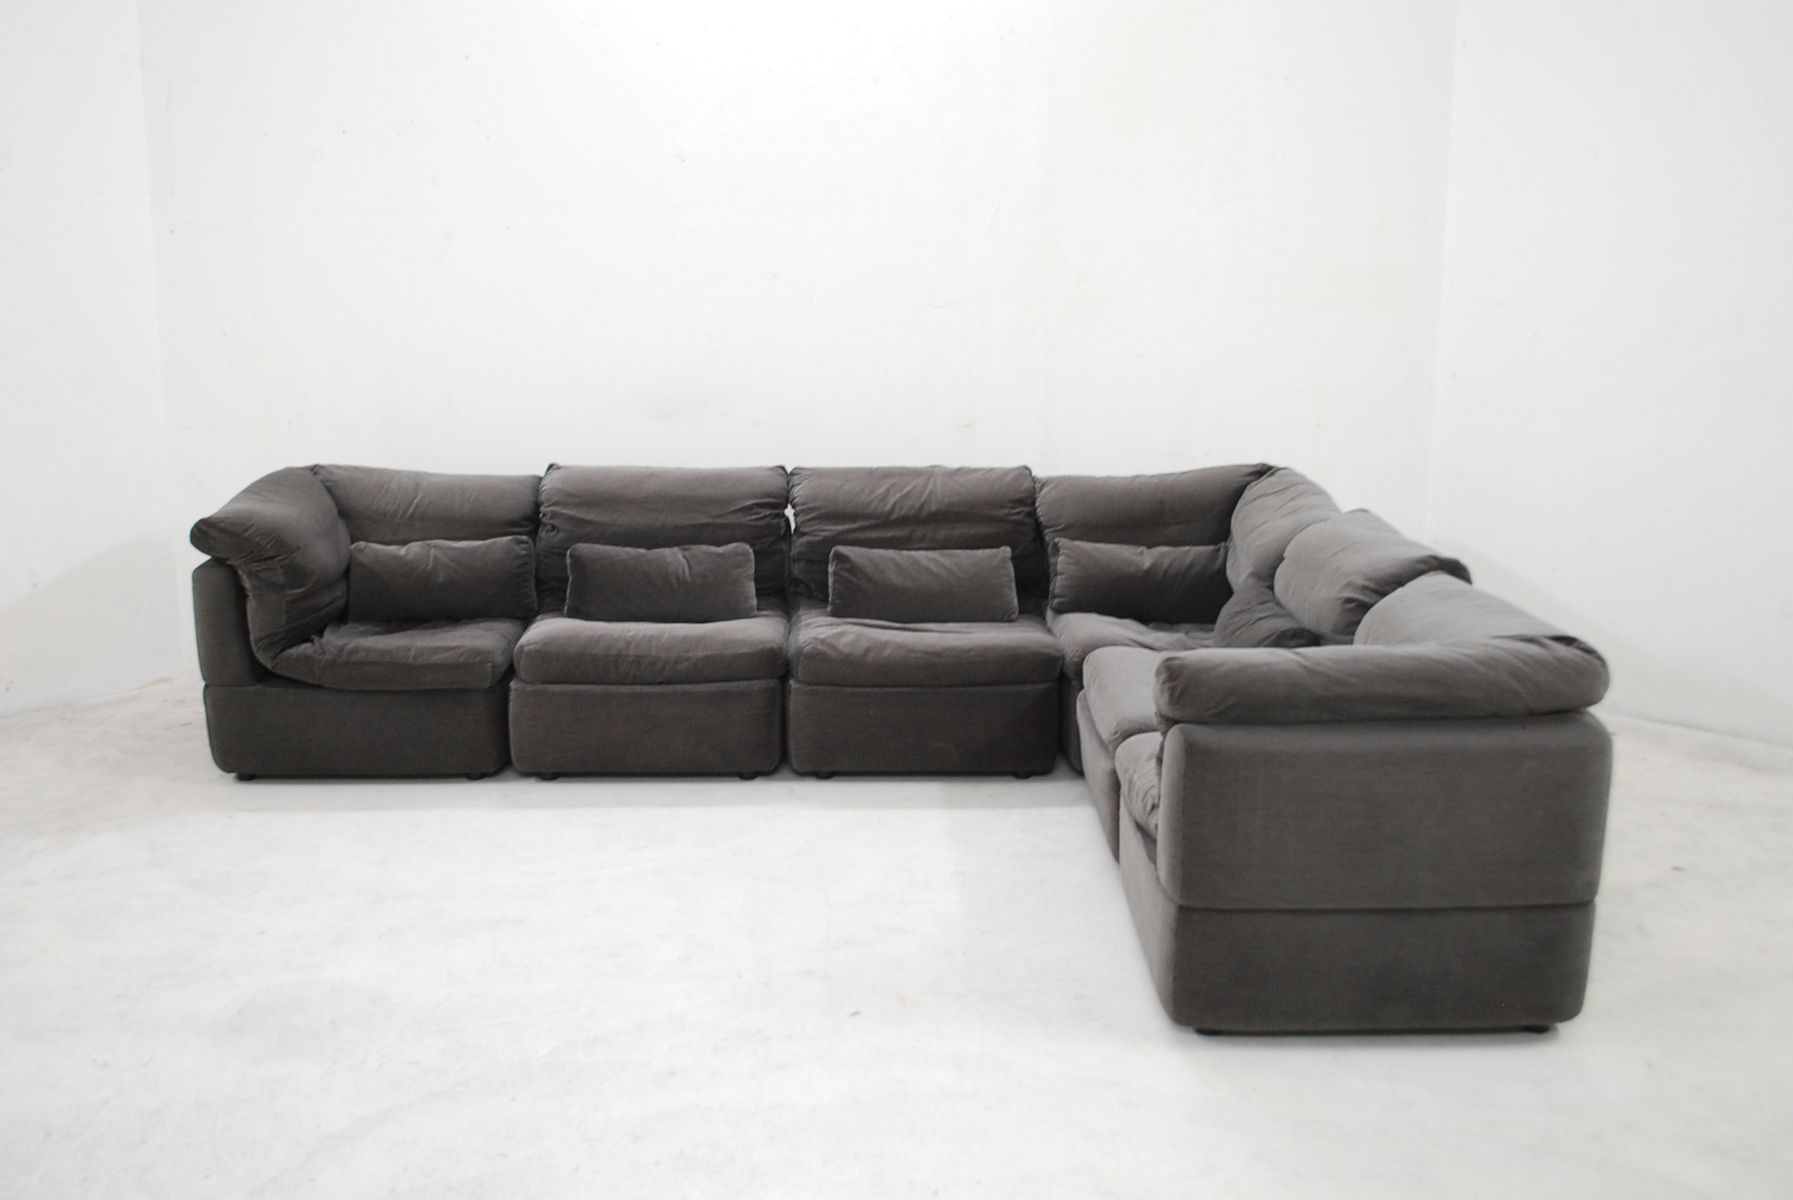 Benz Couch Rolf Benz Couch Free Rolf Benz Couch With Rolf Benz Couch Cool